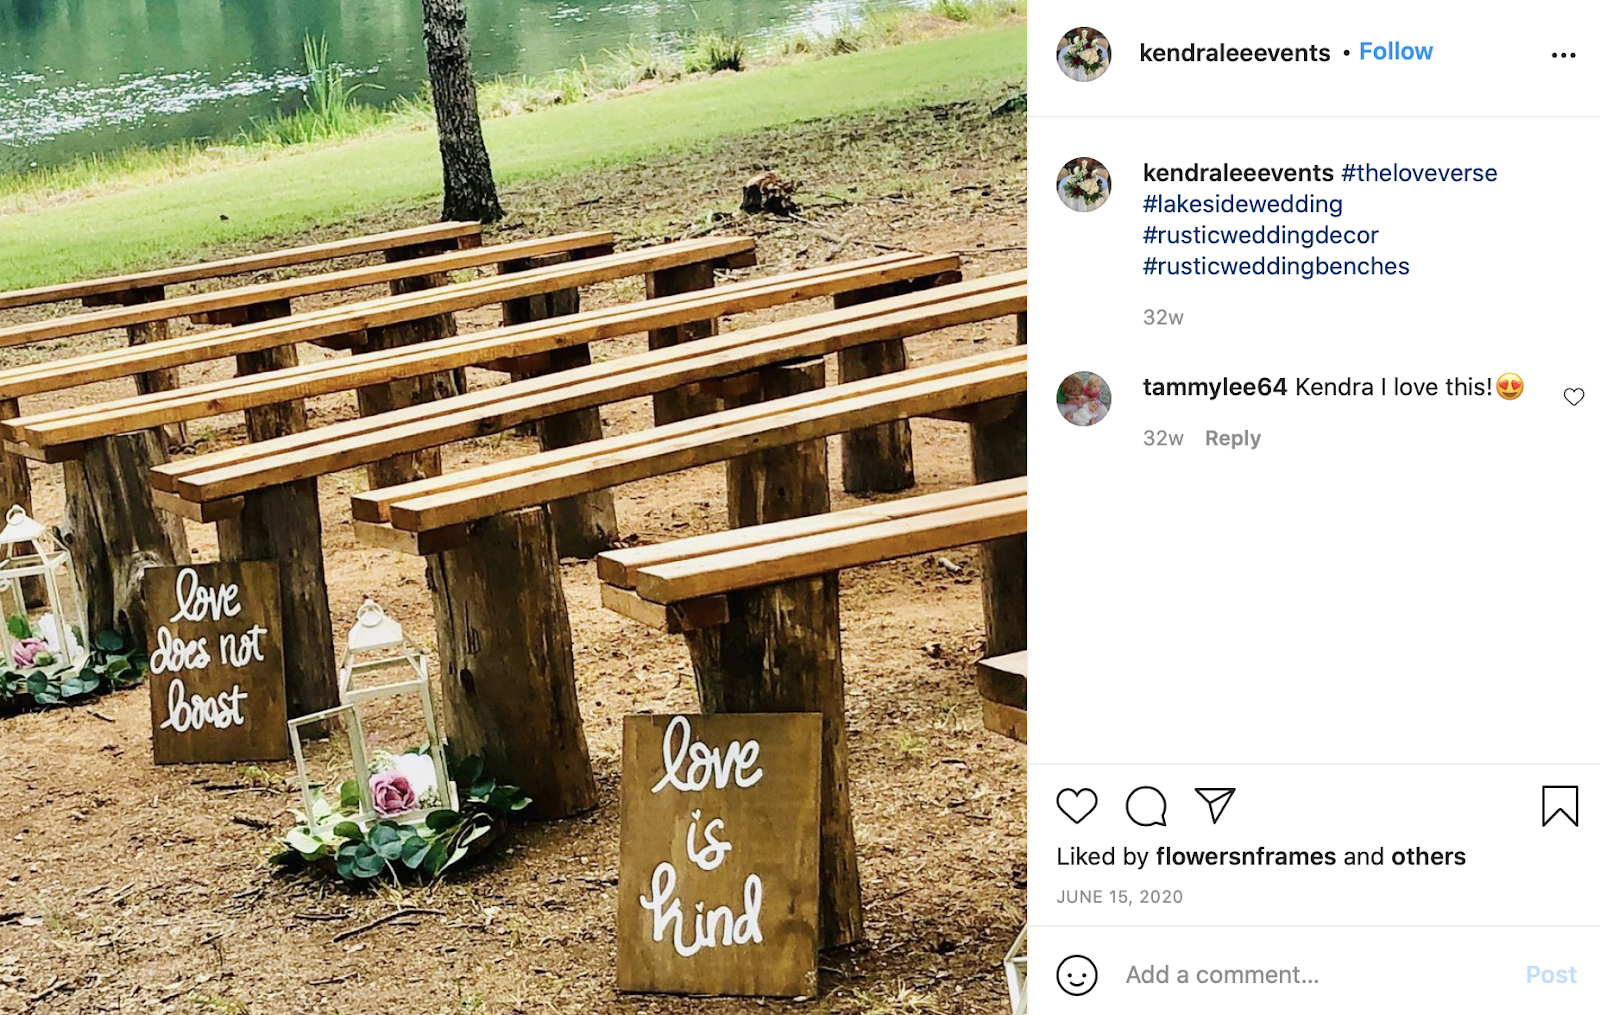 wood stumps and benches for seating at a wedding